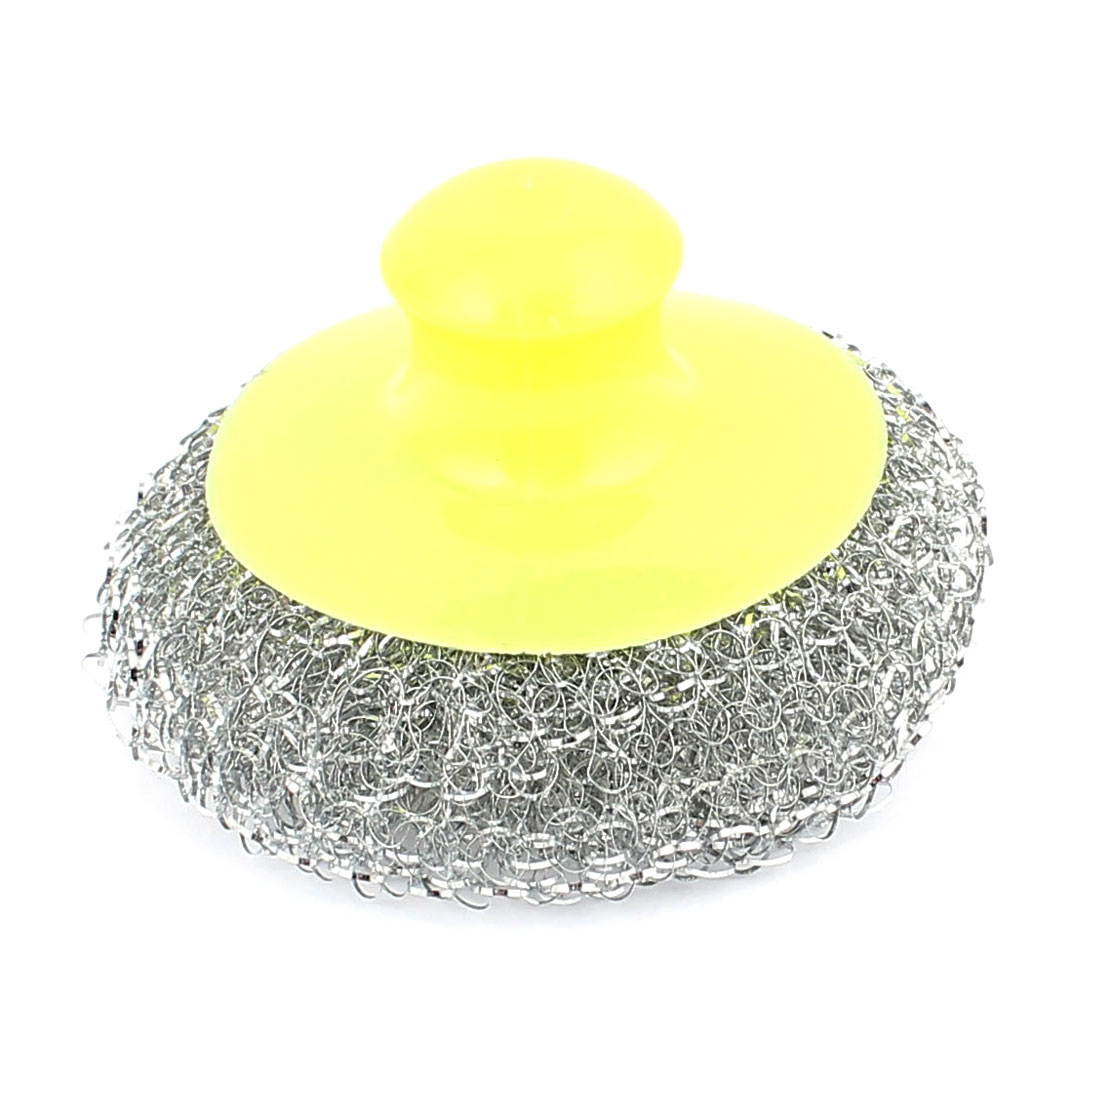 Kitchen Pot Pan Bowel Stainless Steel Wire Ball Scouring Pad Cleaning Brush Cleaner Yellow